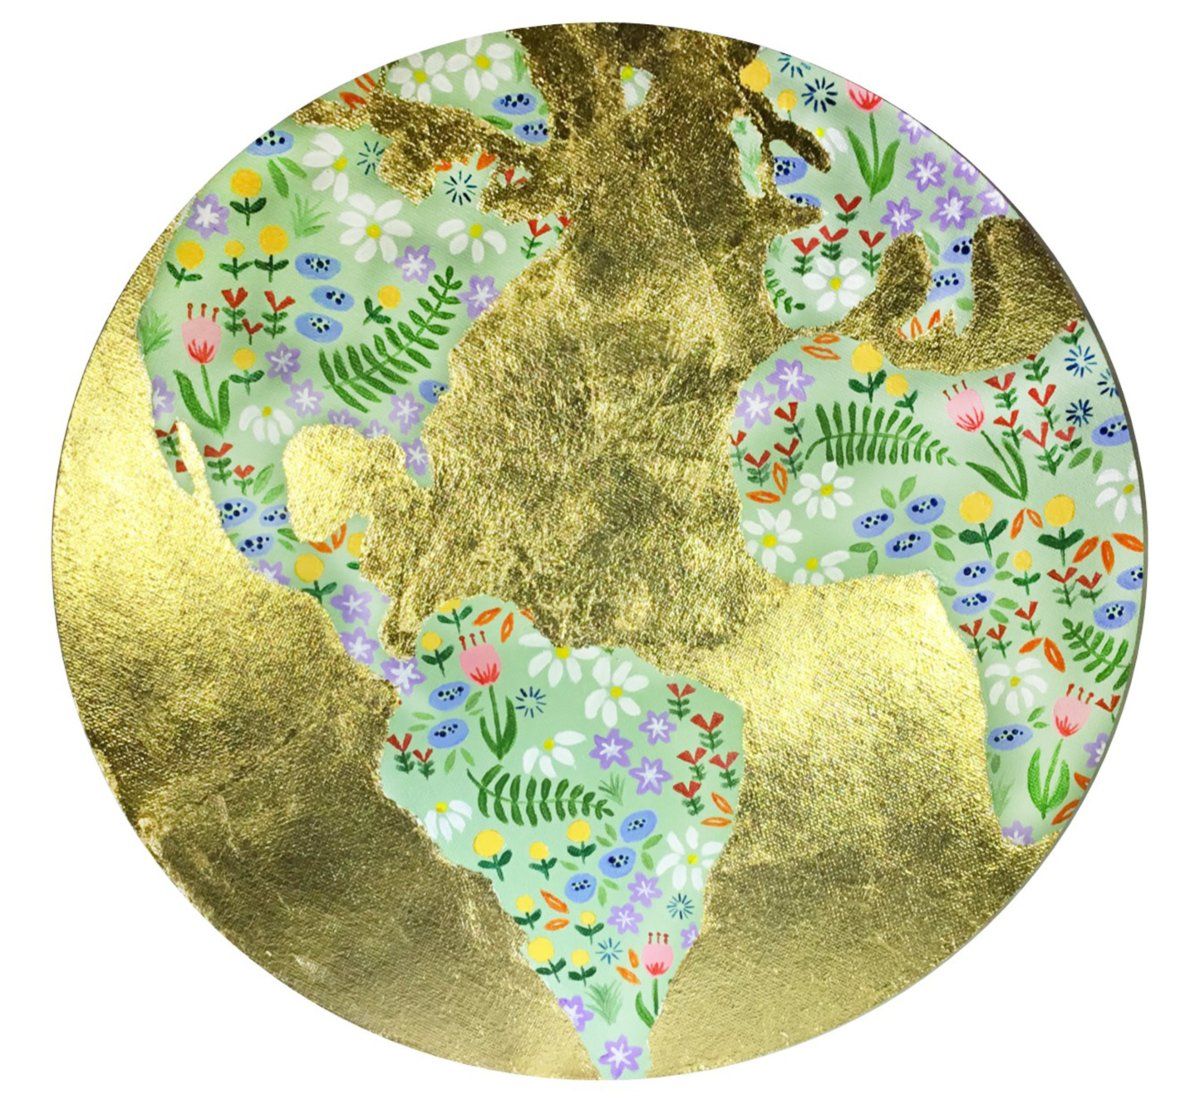 Artwork shows a map of the world with continents in green with dots of color and oceans in gold.